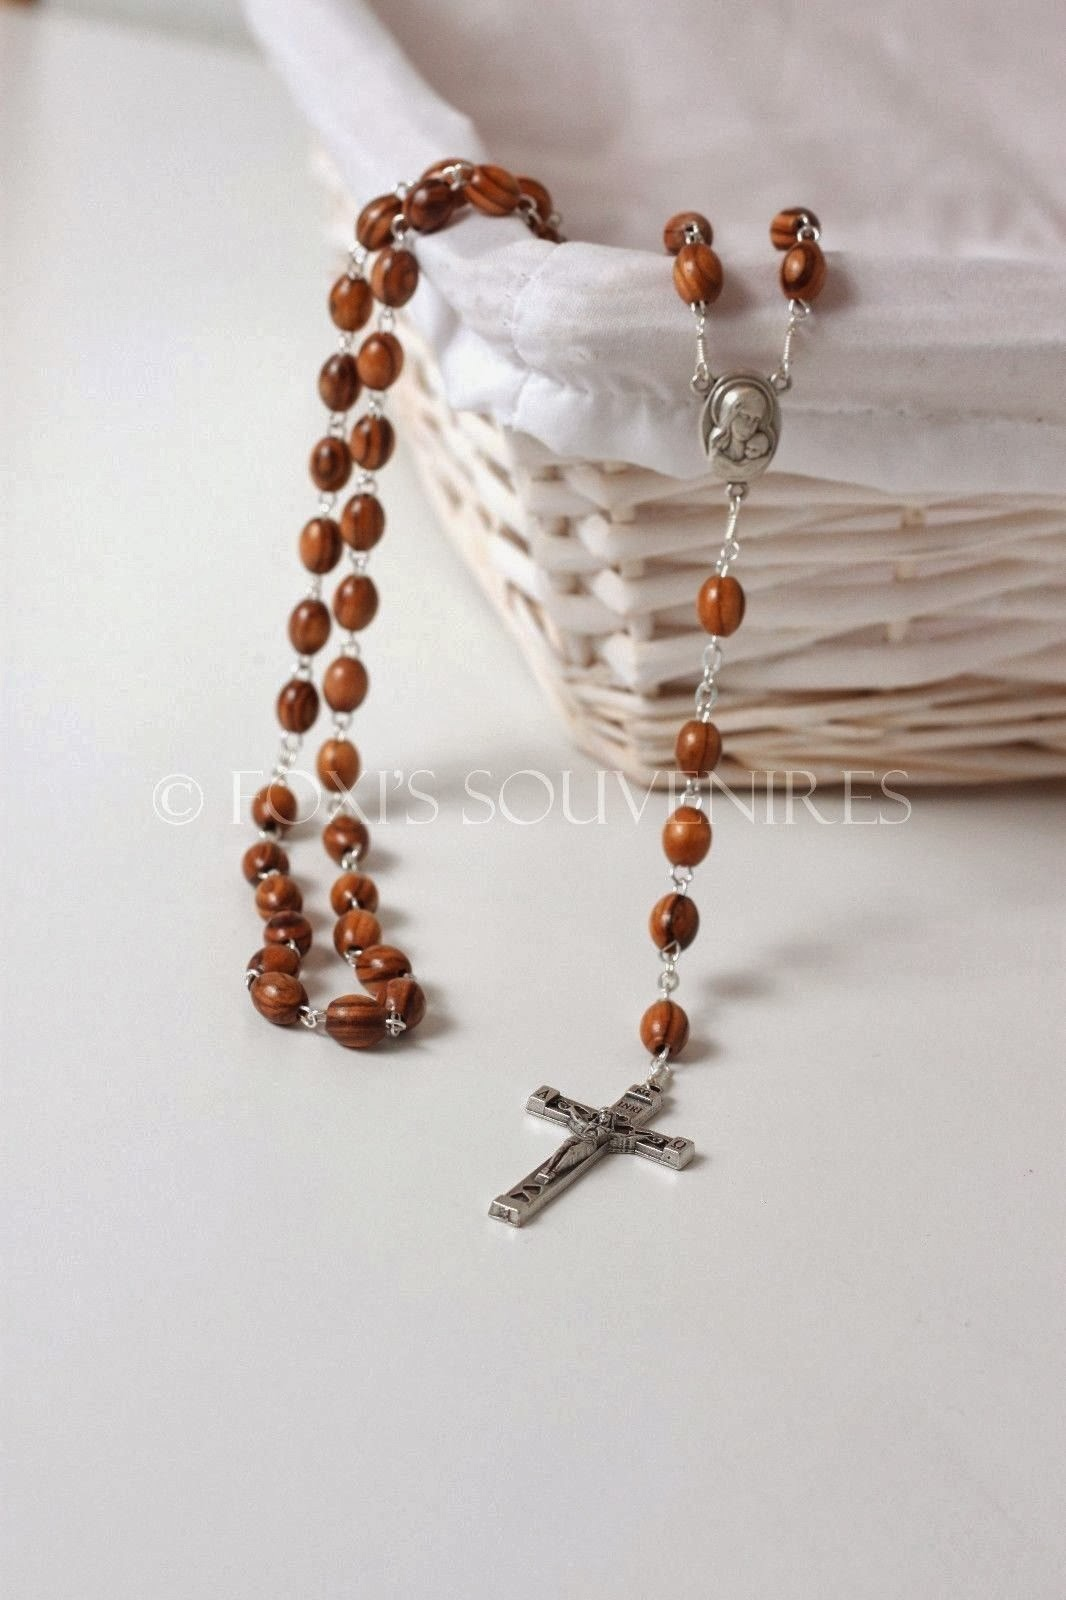 Bethlehem Olive Wood hand made Beads Rosary Chaplet Crucifix